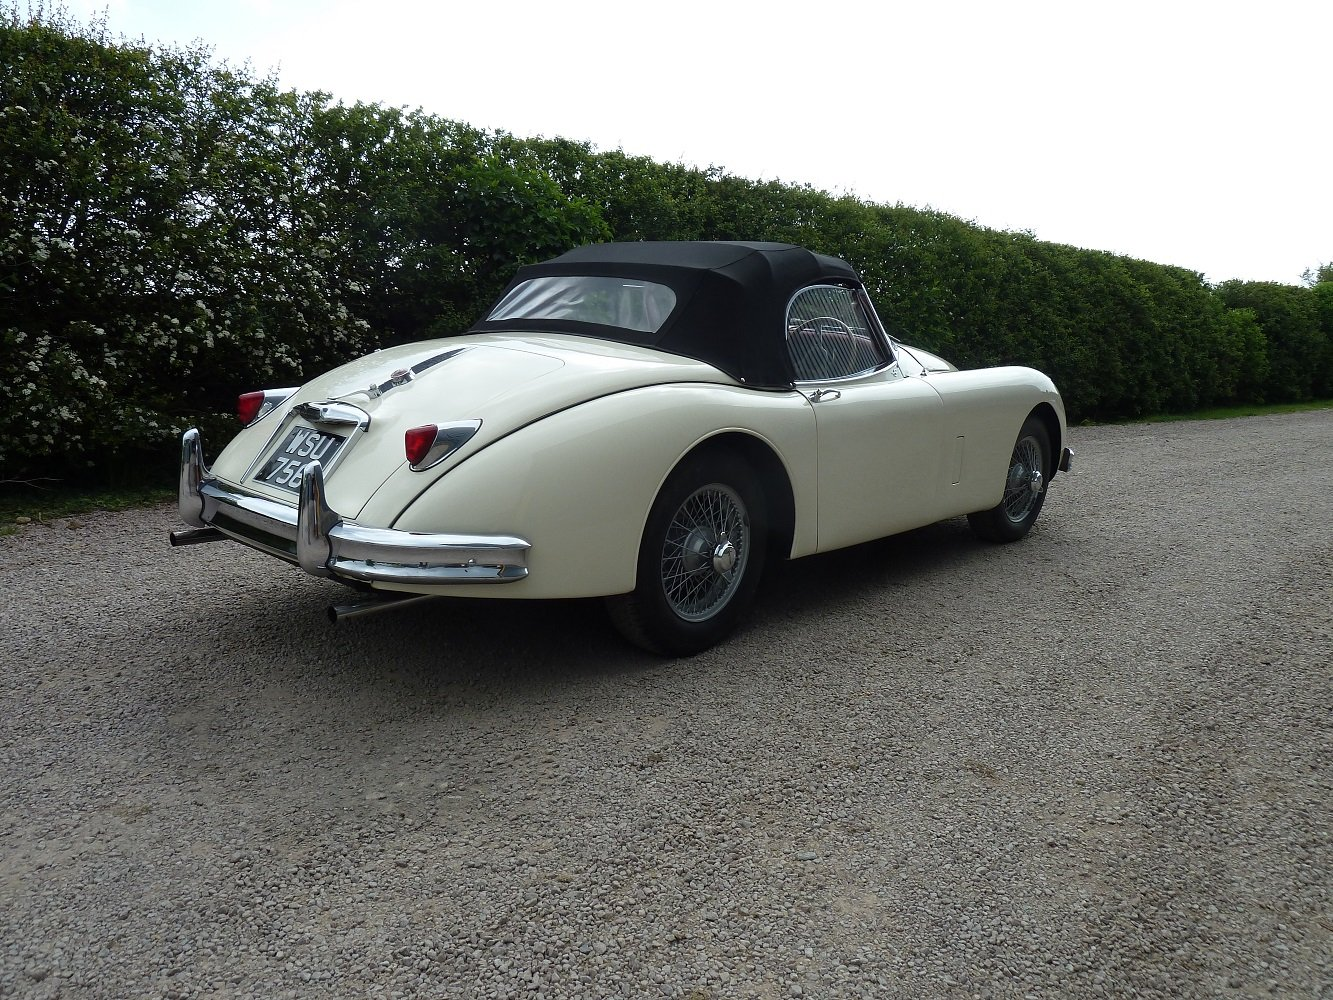 1958 Jaguar 1959 XK150S Roadster  For Sale (picture 2 of 6)